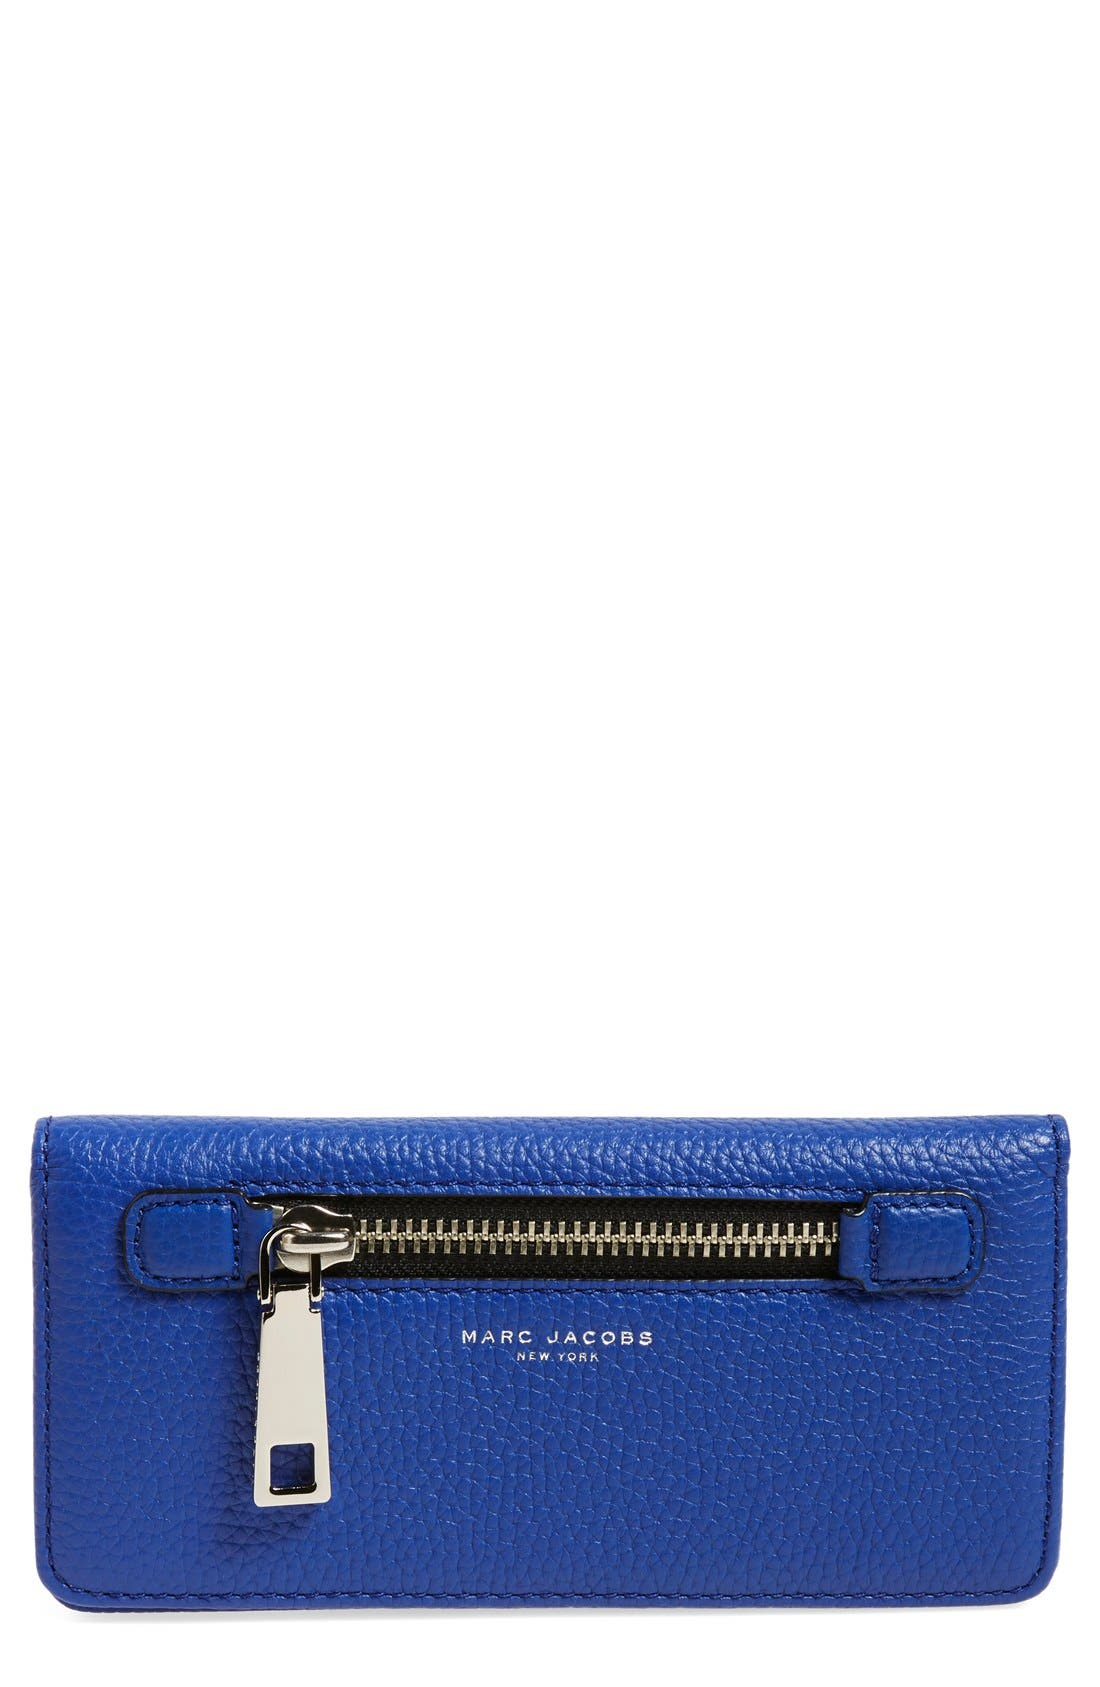 'Gotham' Leather Wallet,                         Main,                         color, Cobalt Blue